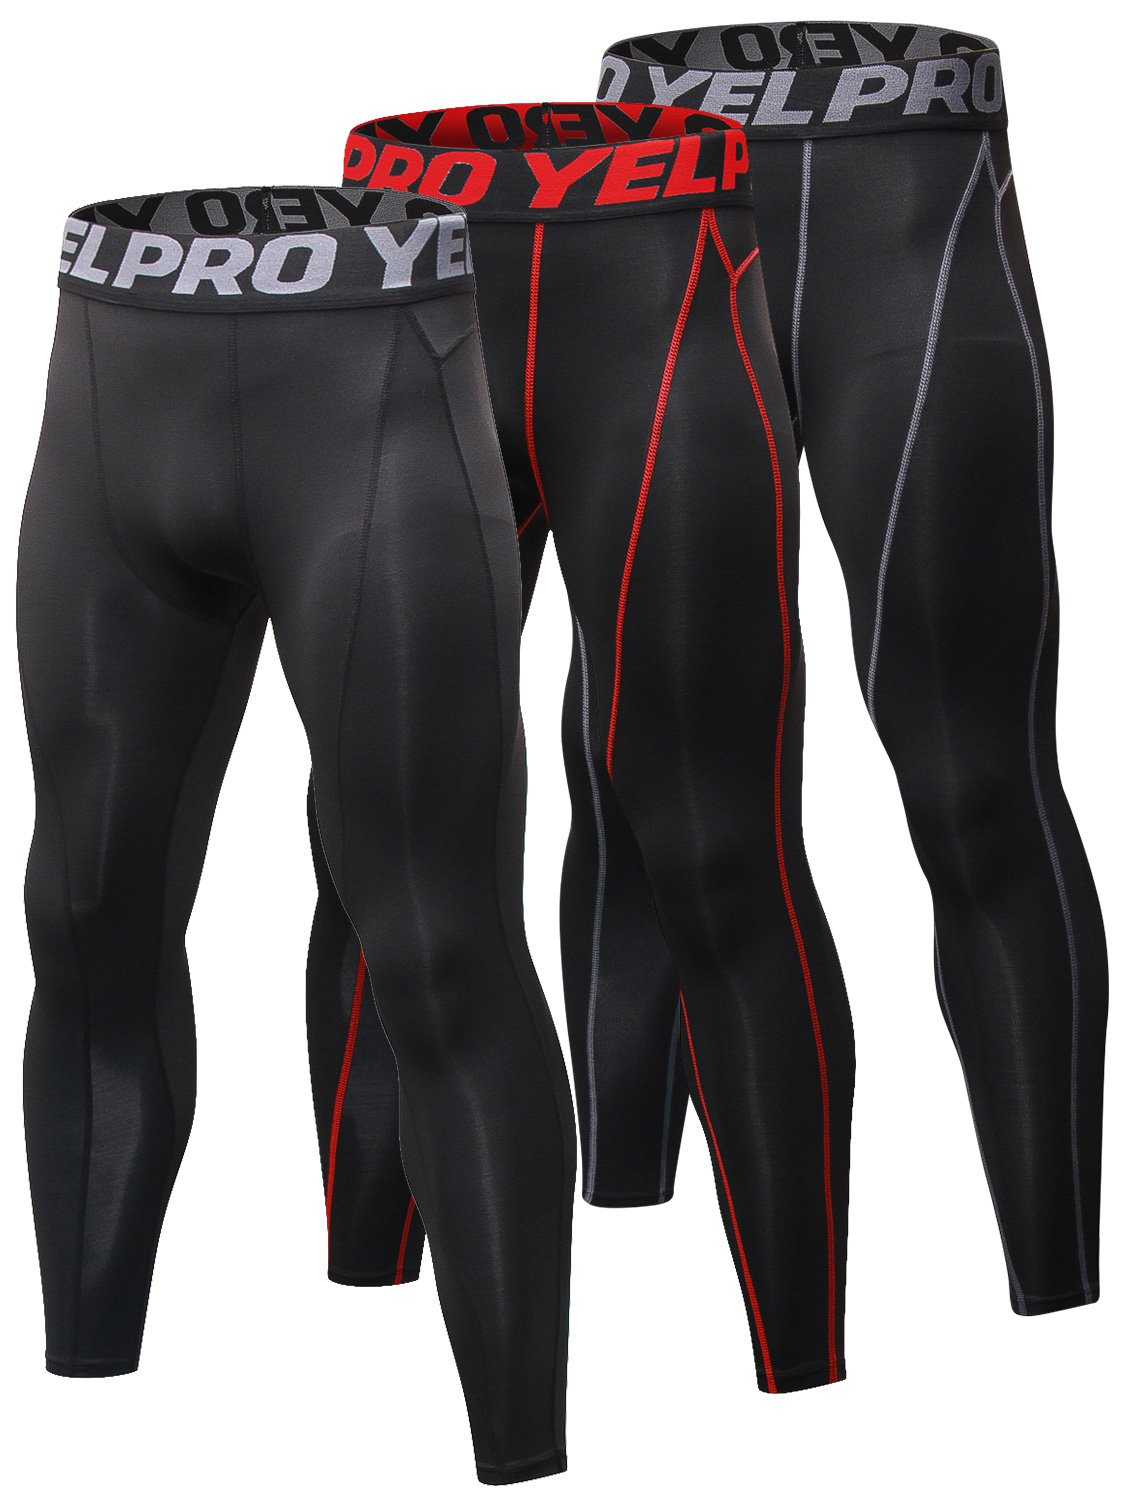 Yuerlian Men's Compression Pants Baselayer Cool Dry Sports Tights Leggings Running Tights